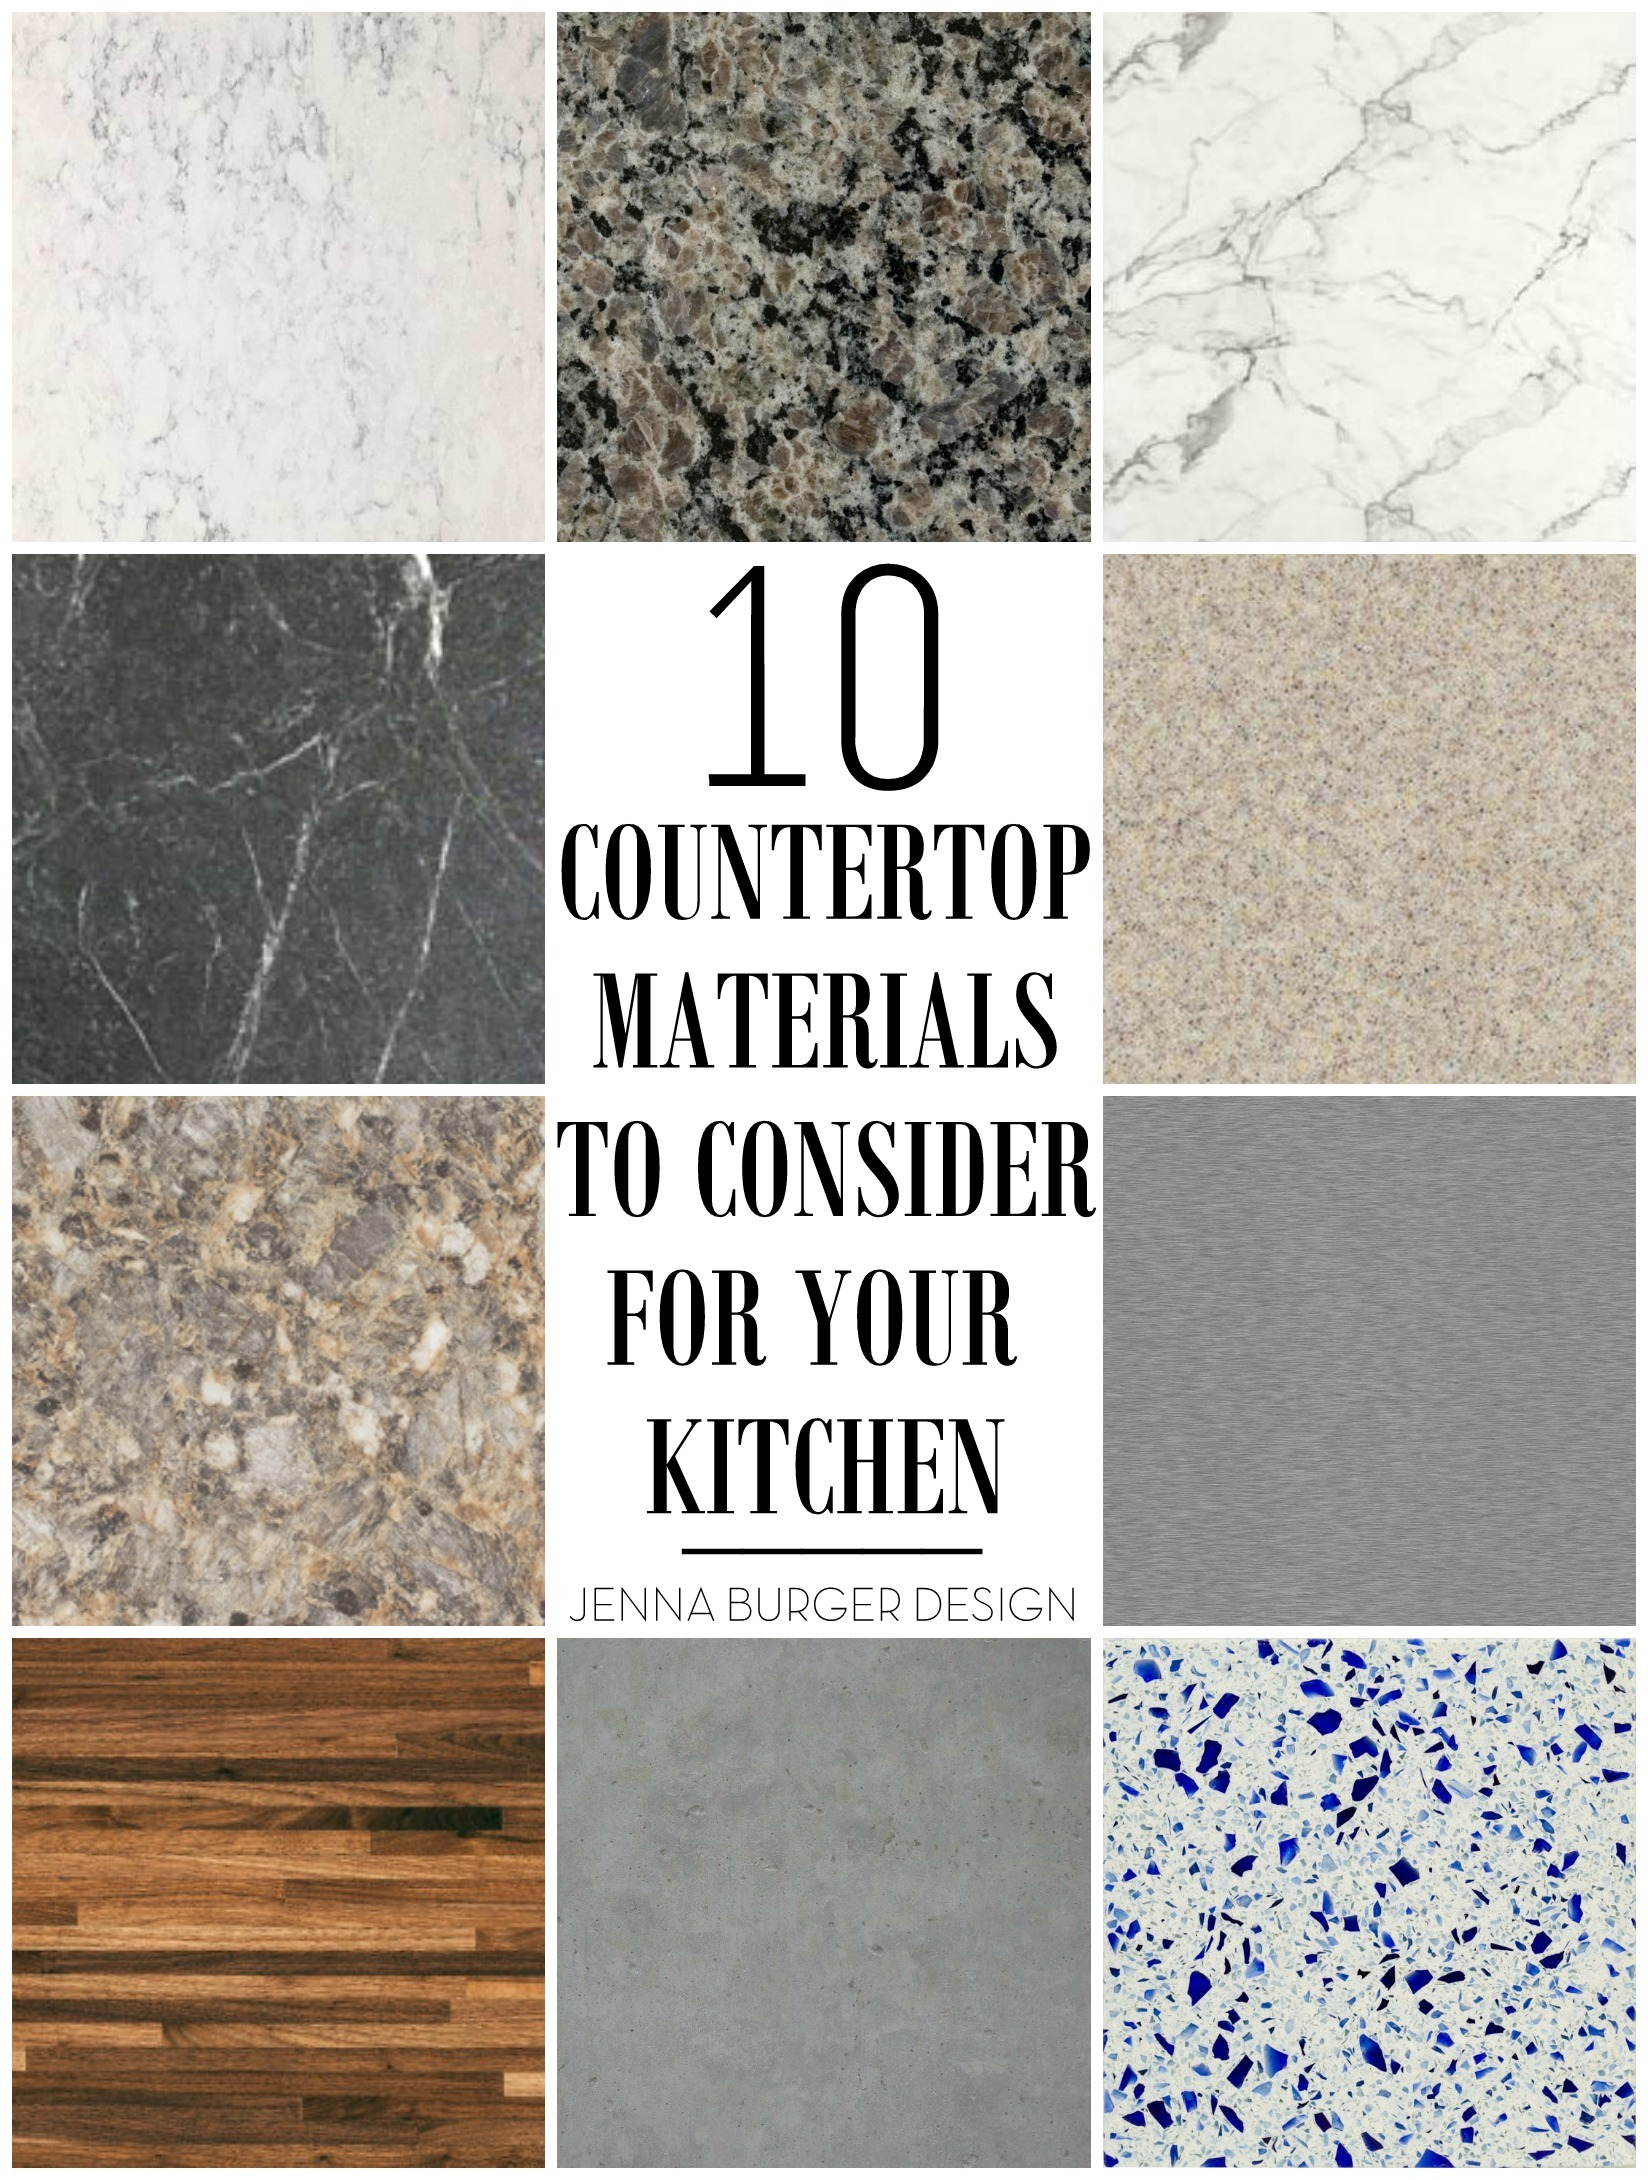 cut material materials how laminate tips high design pros choosing countertop to cons bathroom contemporary for kitchen end